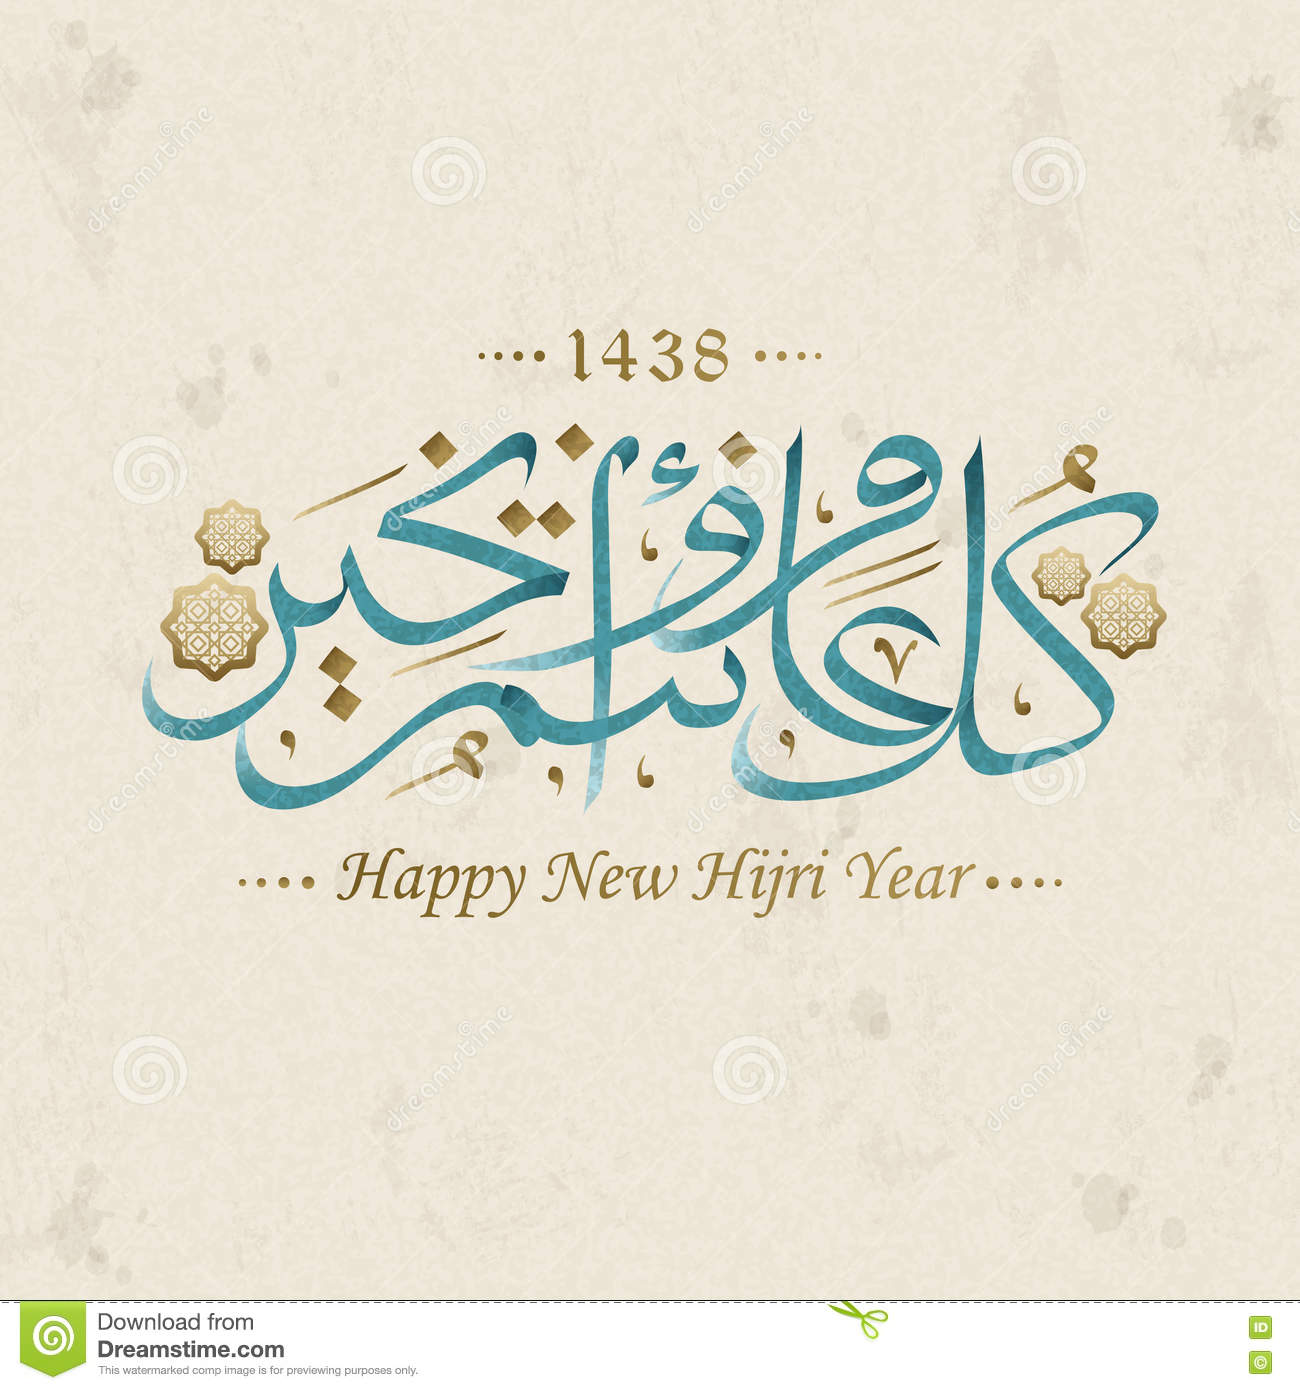 How to say happy new year in arabic images